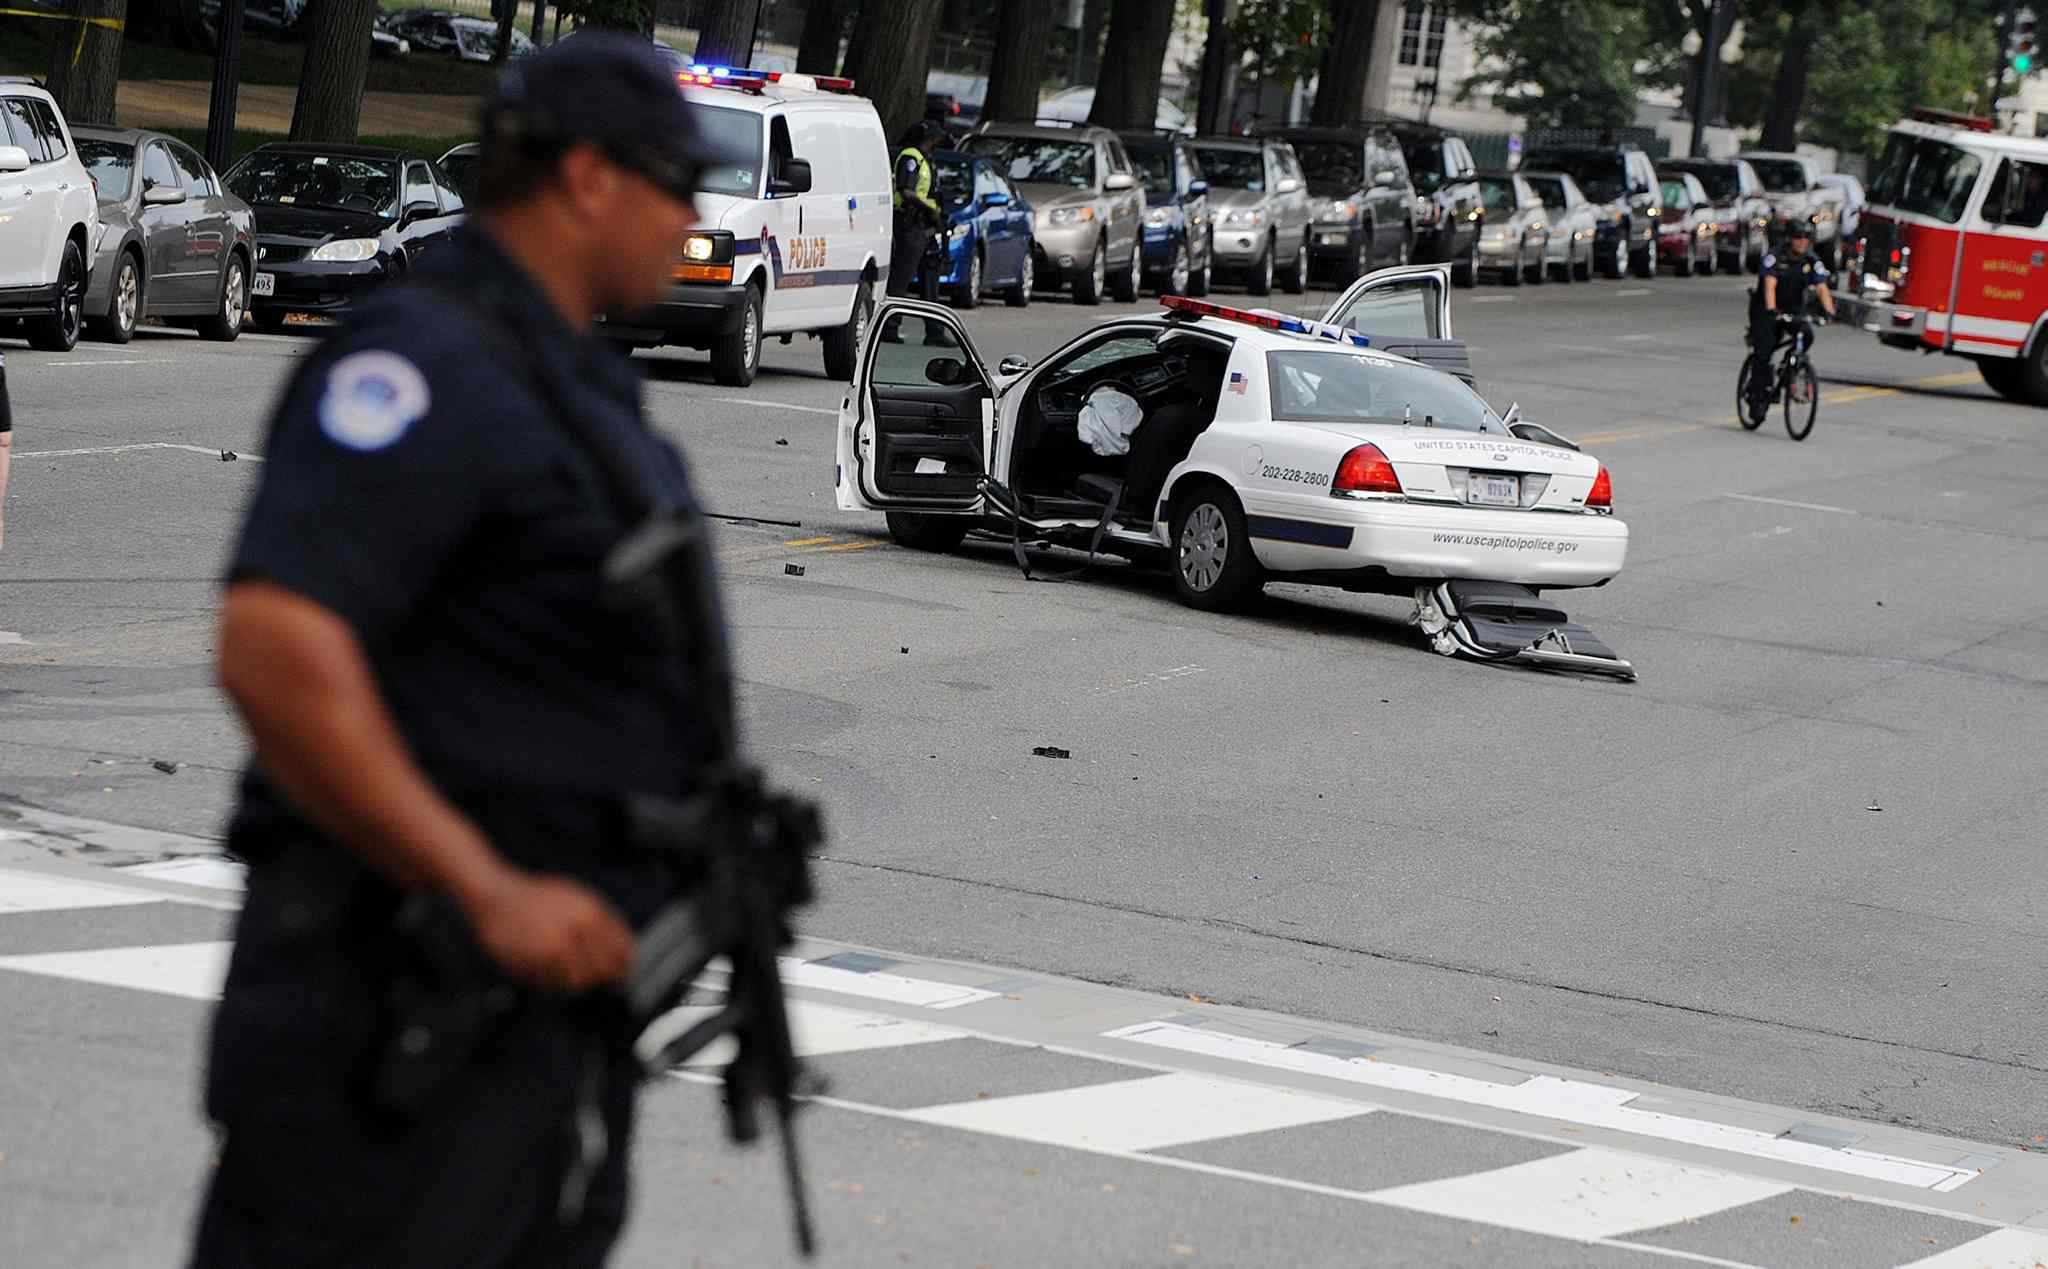 A U.S. Capitol police car sits wrecked in the street as an officer surveys the scene.